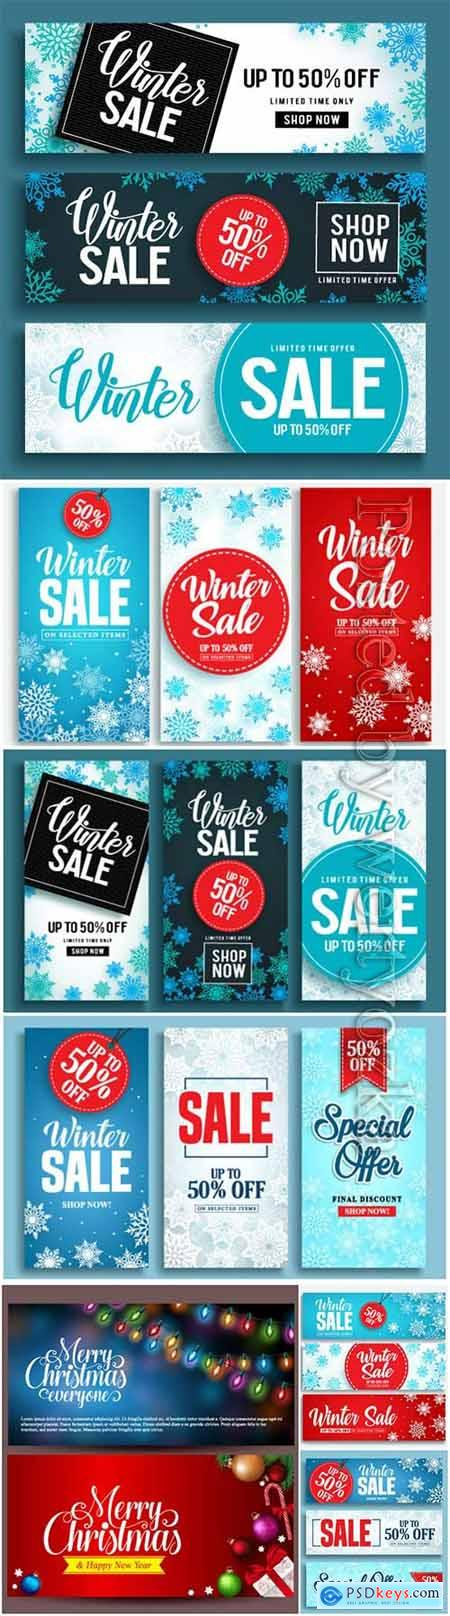 Winter sale vector banner set with discount text